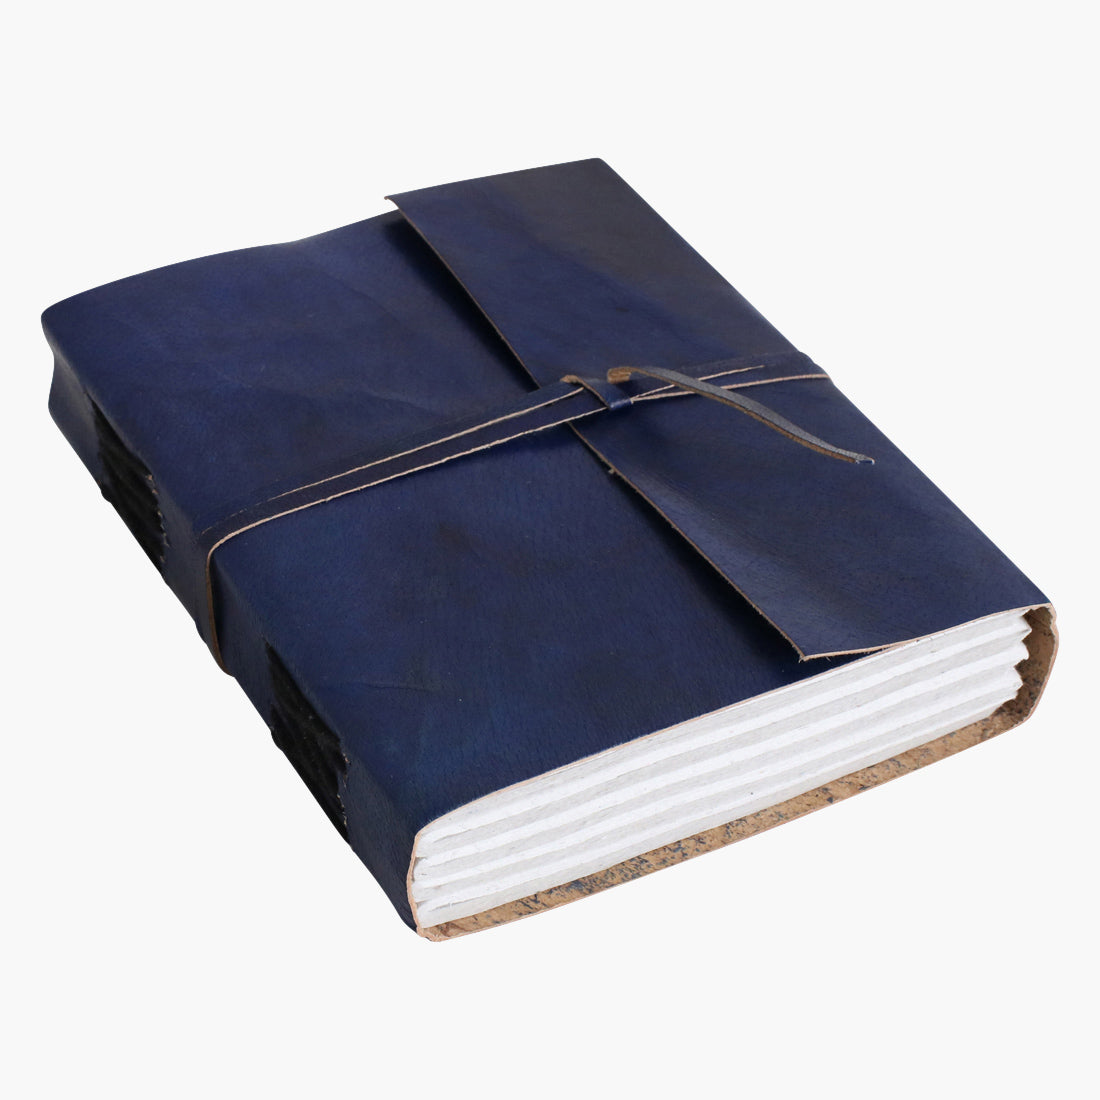 Vora leather travelbook BLUE